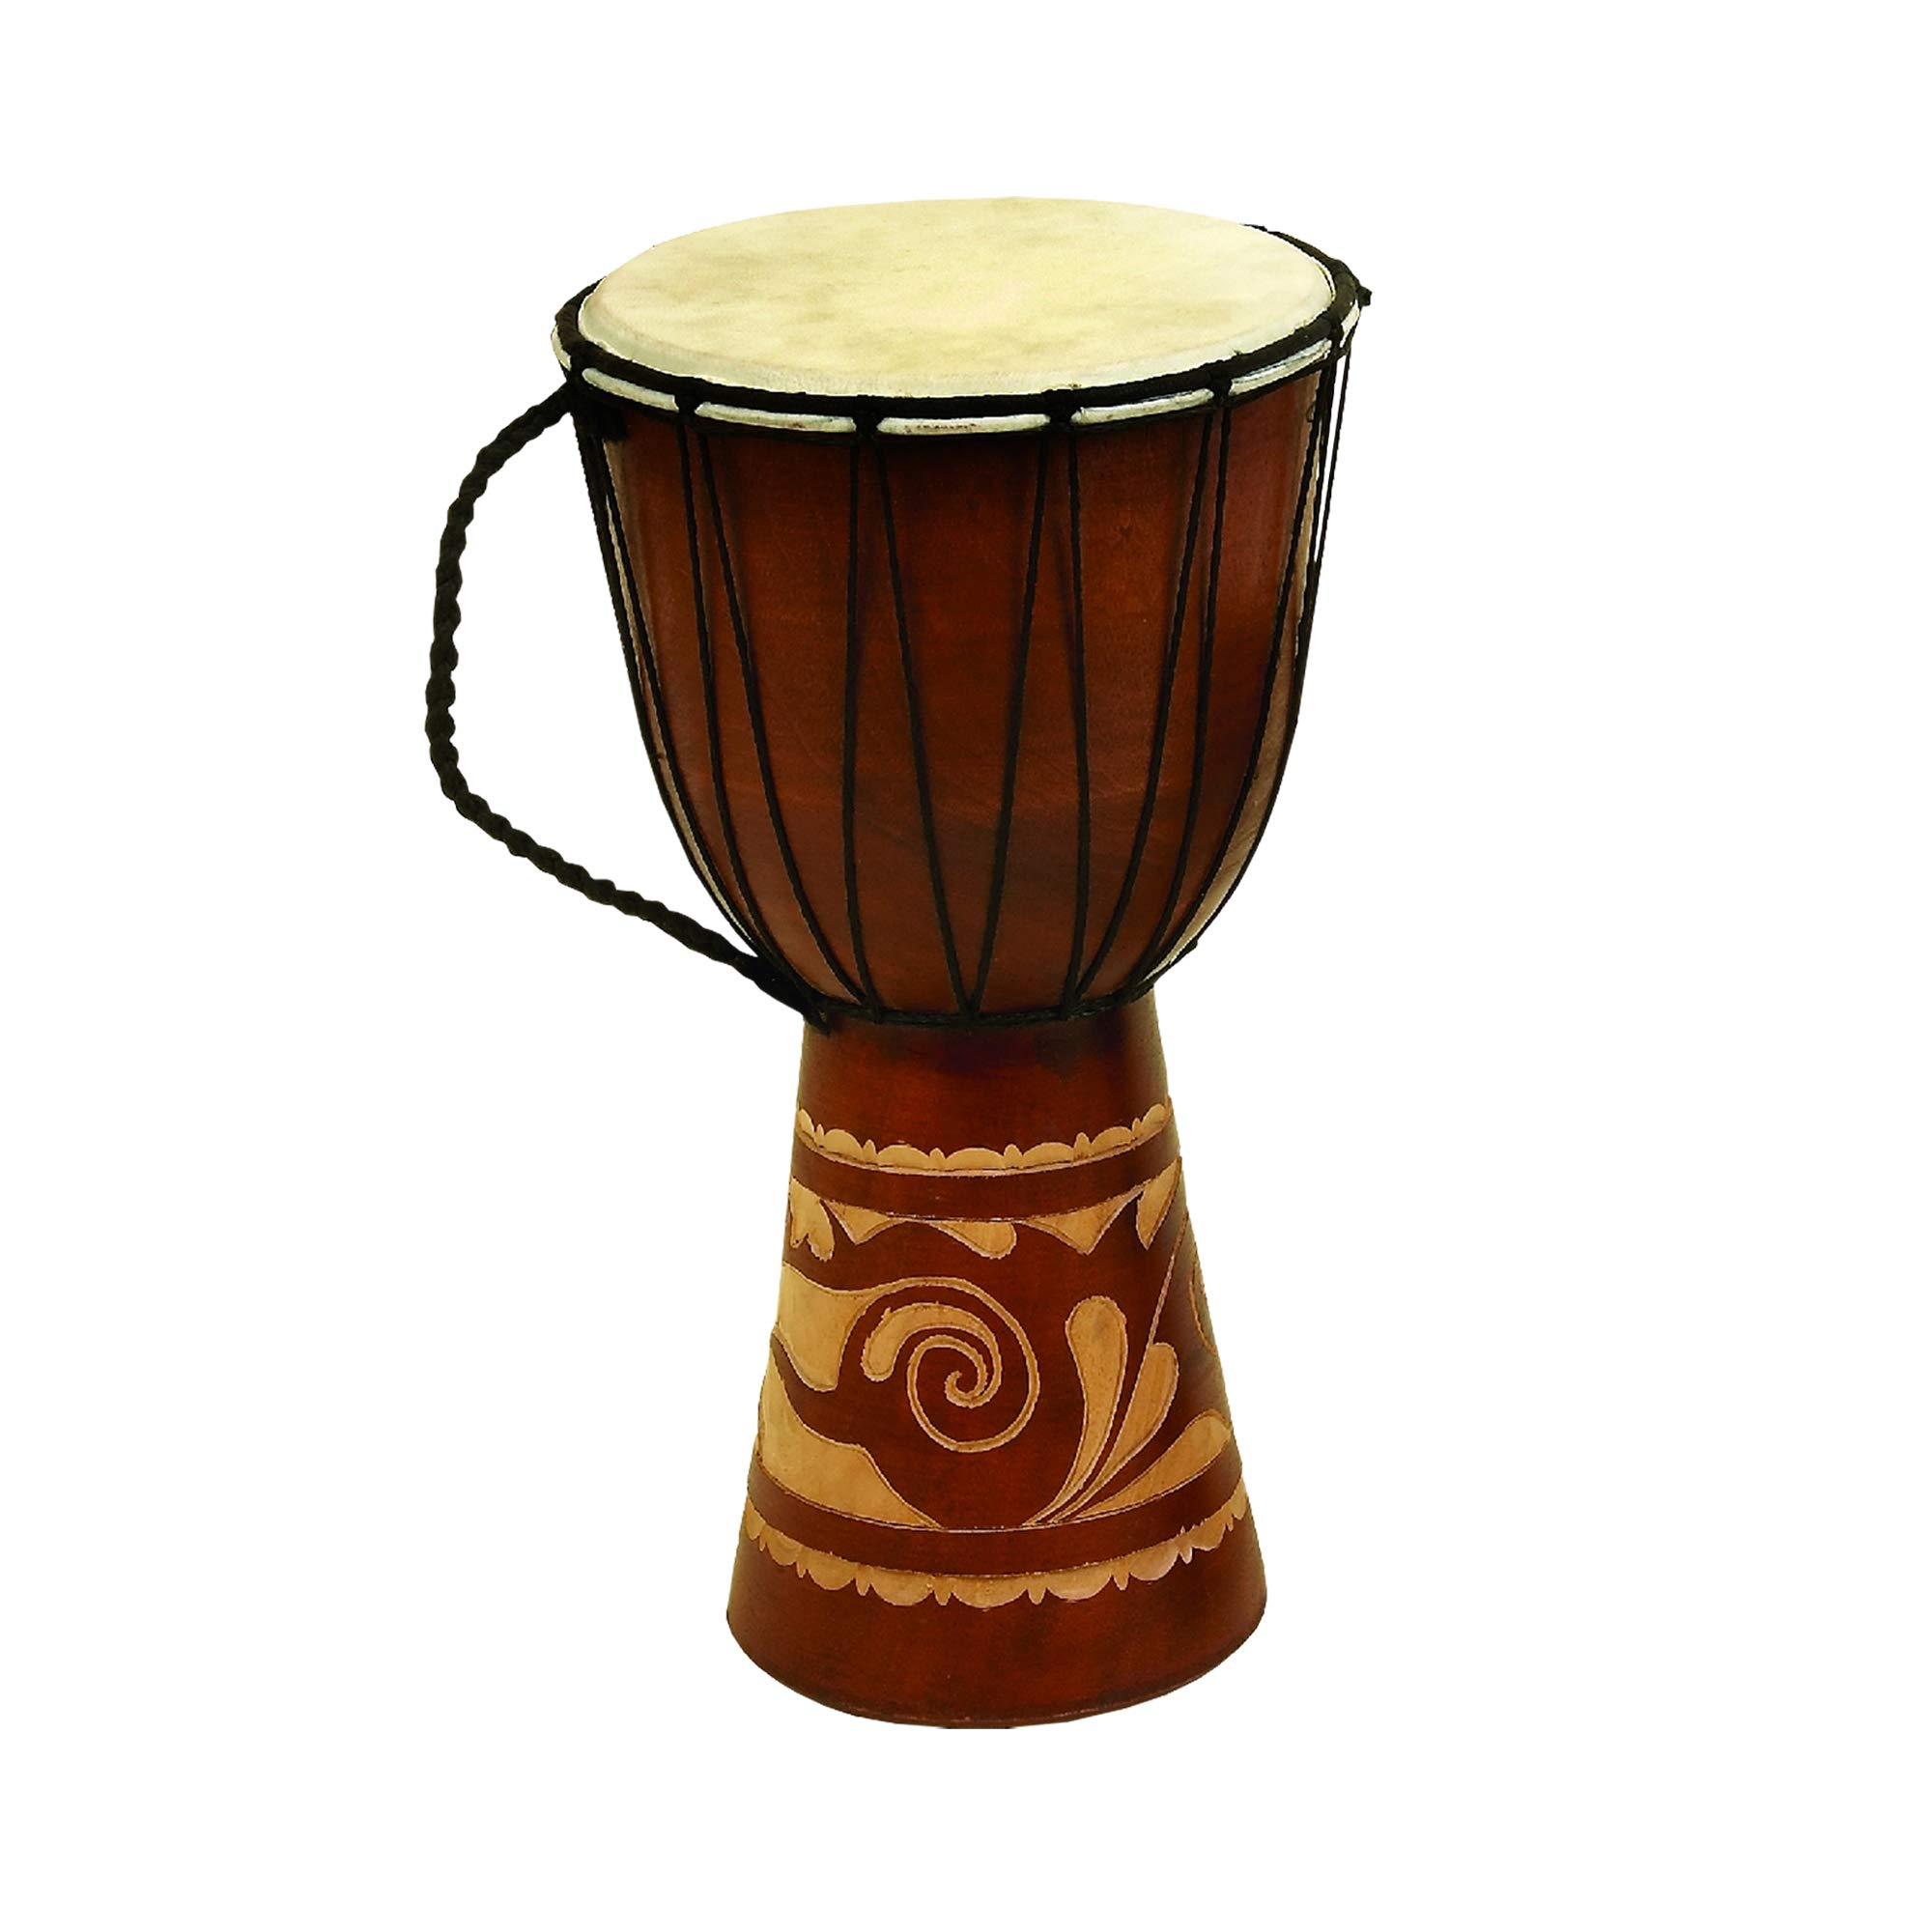 Benzara Decorative Wood and Faux Leather Djembe Drum with Side Handle, Large, Brown and Cream,